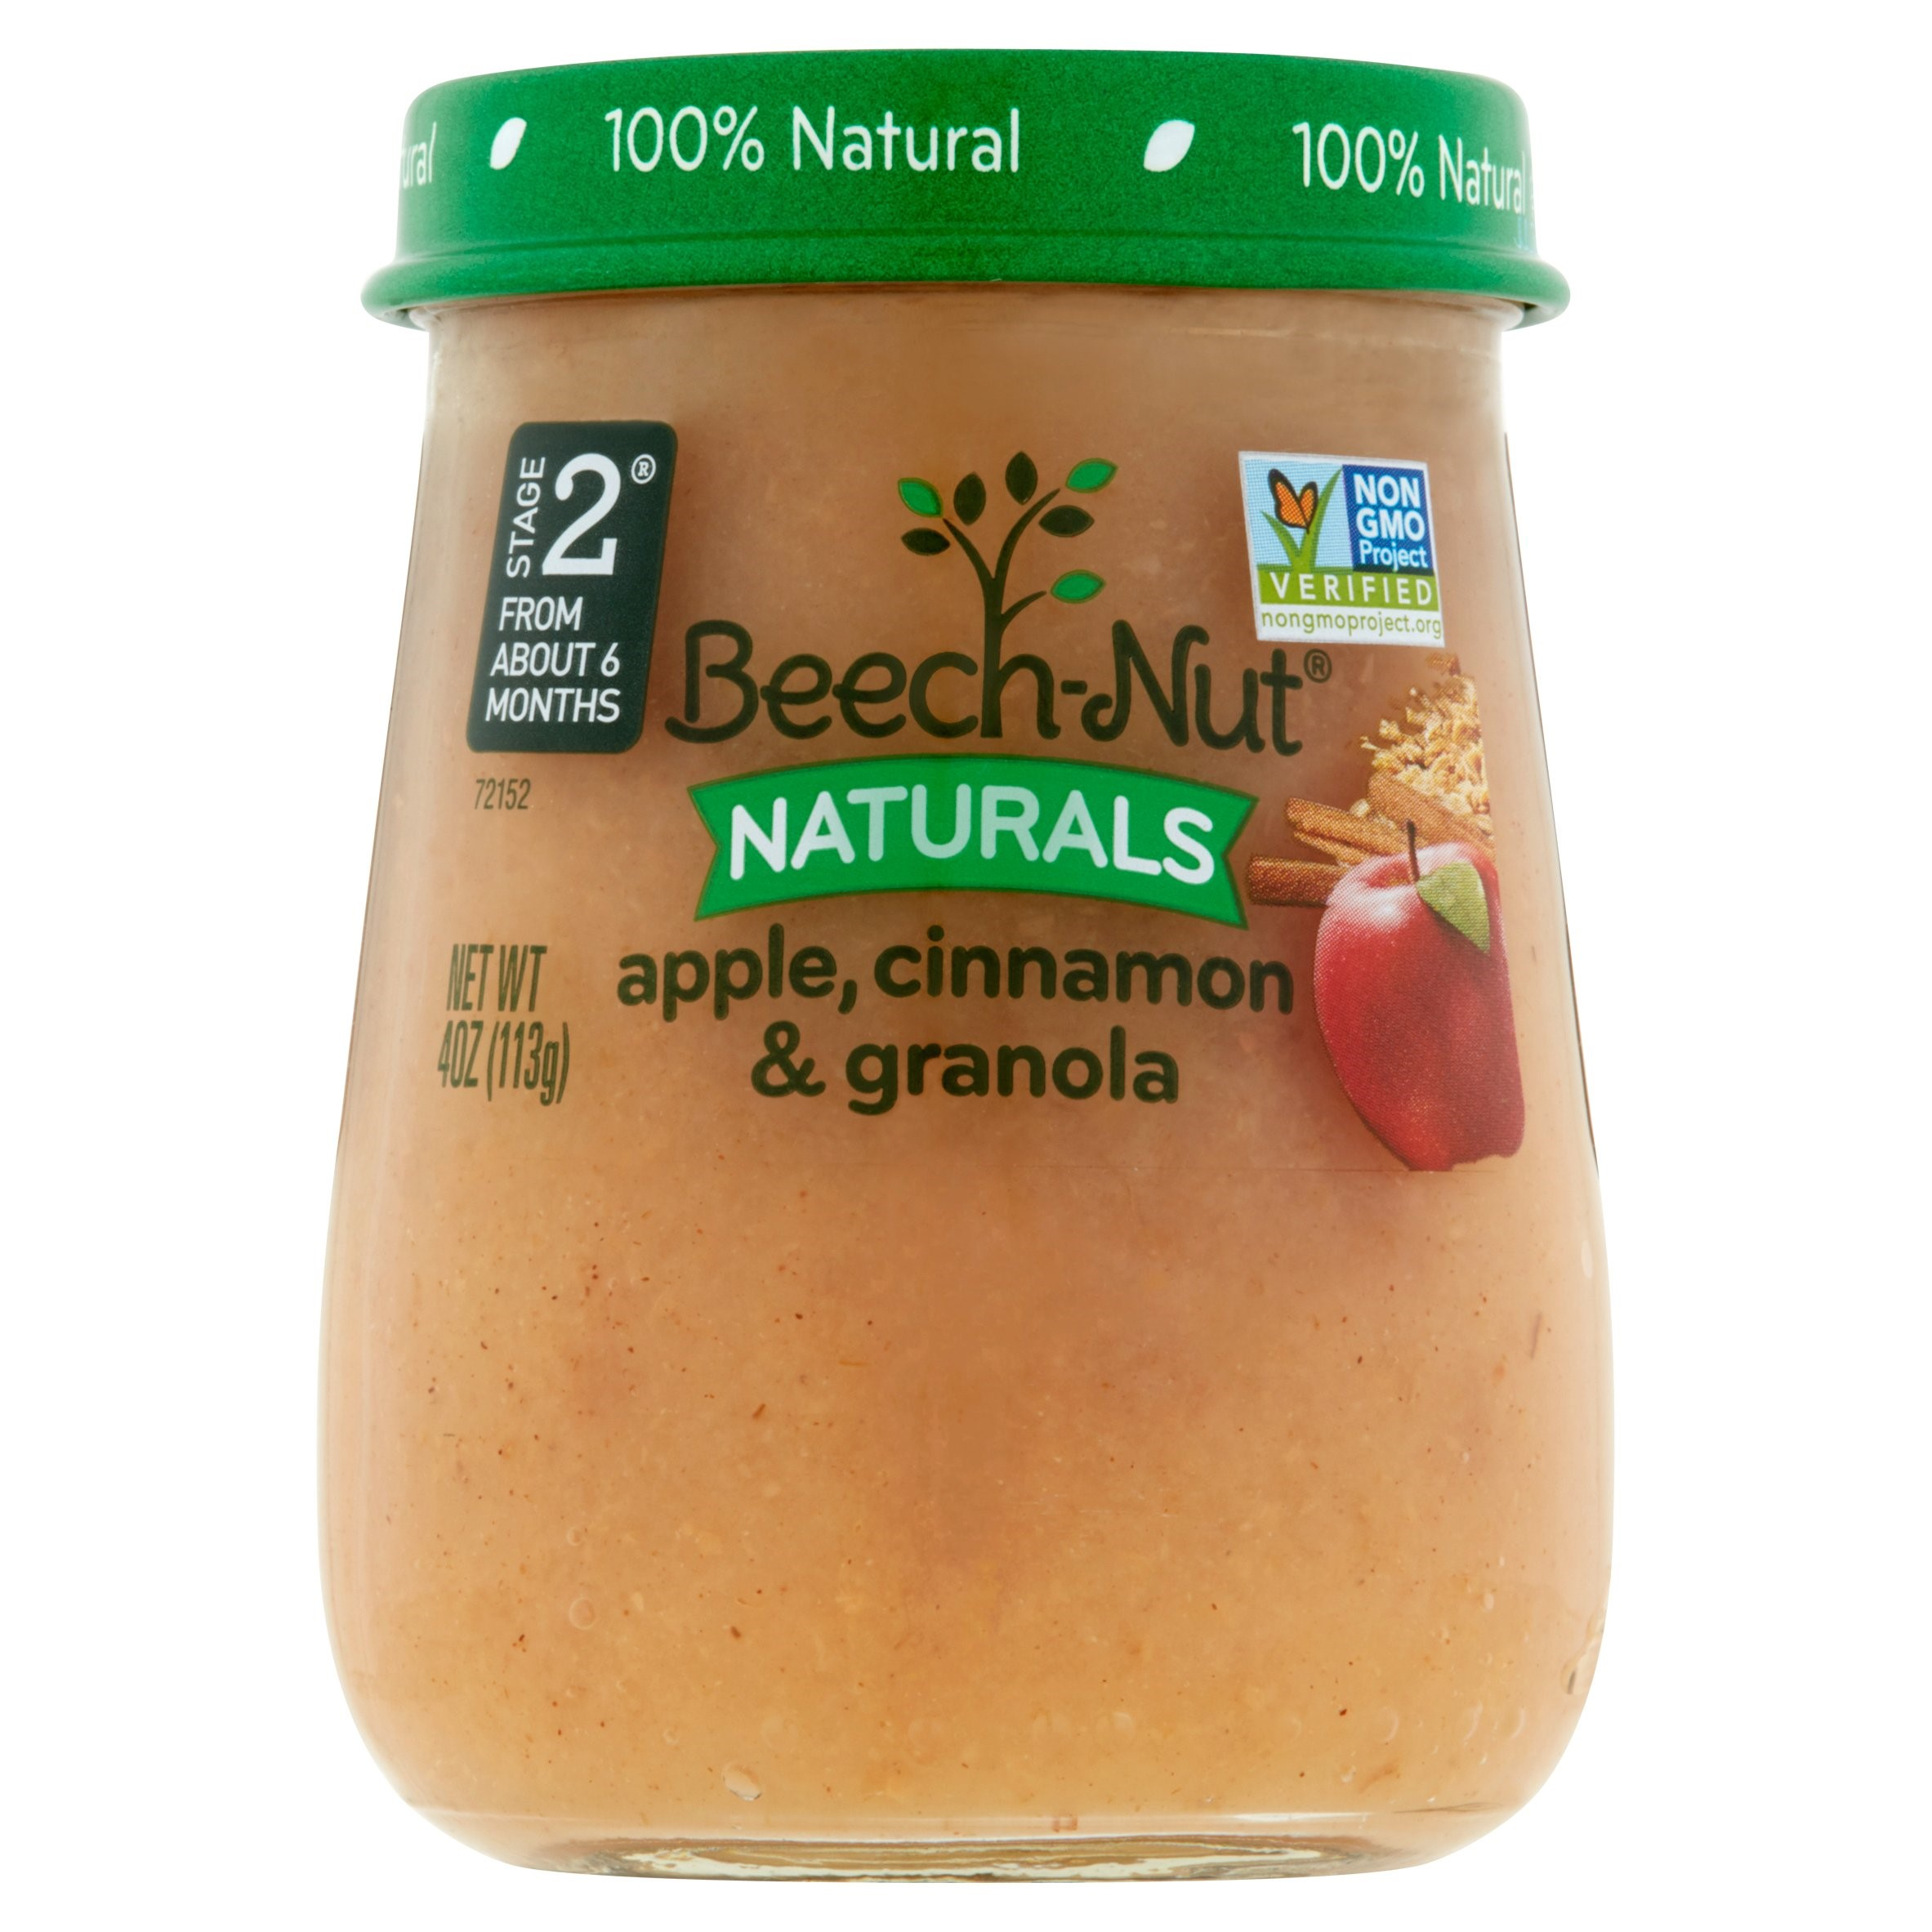 Beech-Nut Naturals Apple, Cinnamon & Granola Baby Food Stage 2 From About 6 Months, 4 oz, 10 pack